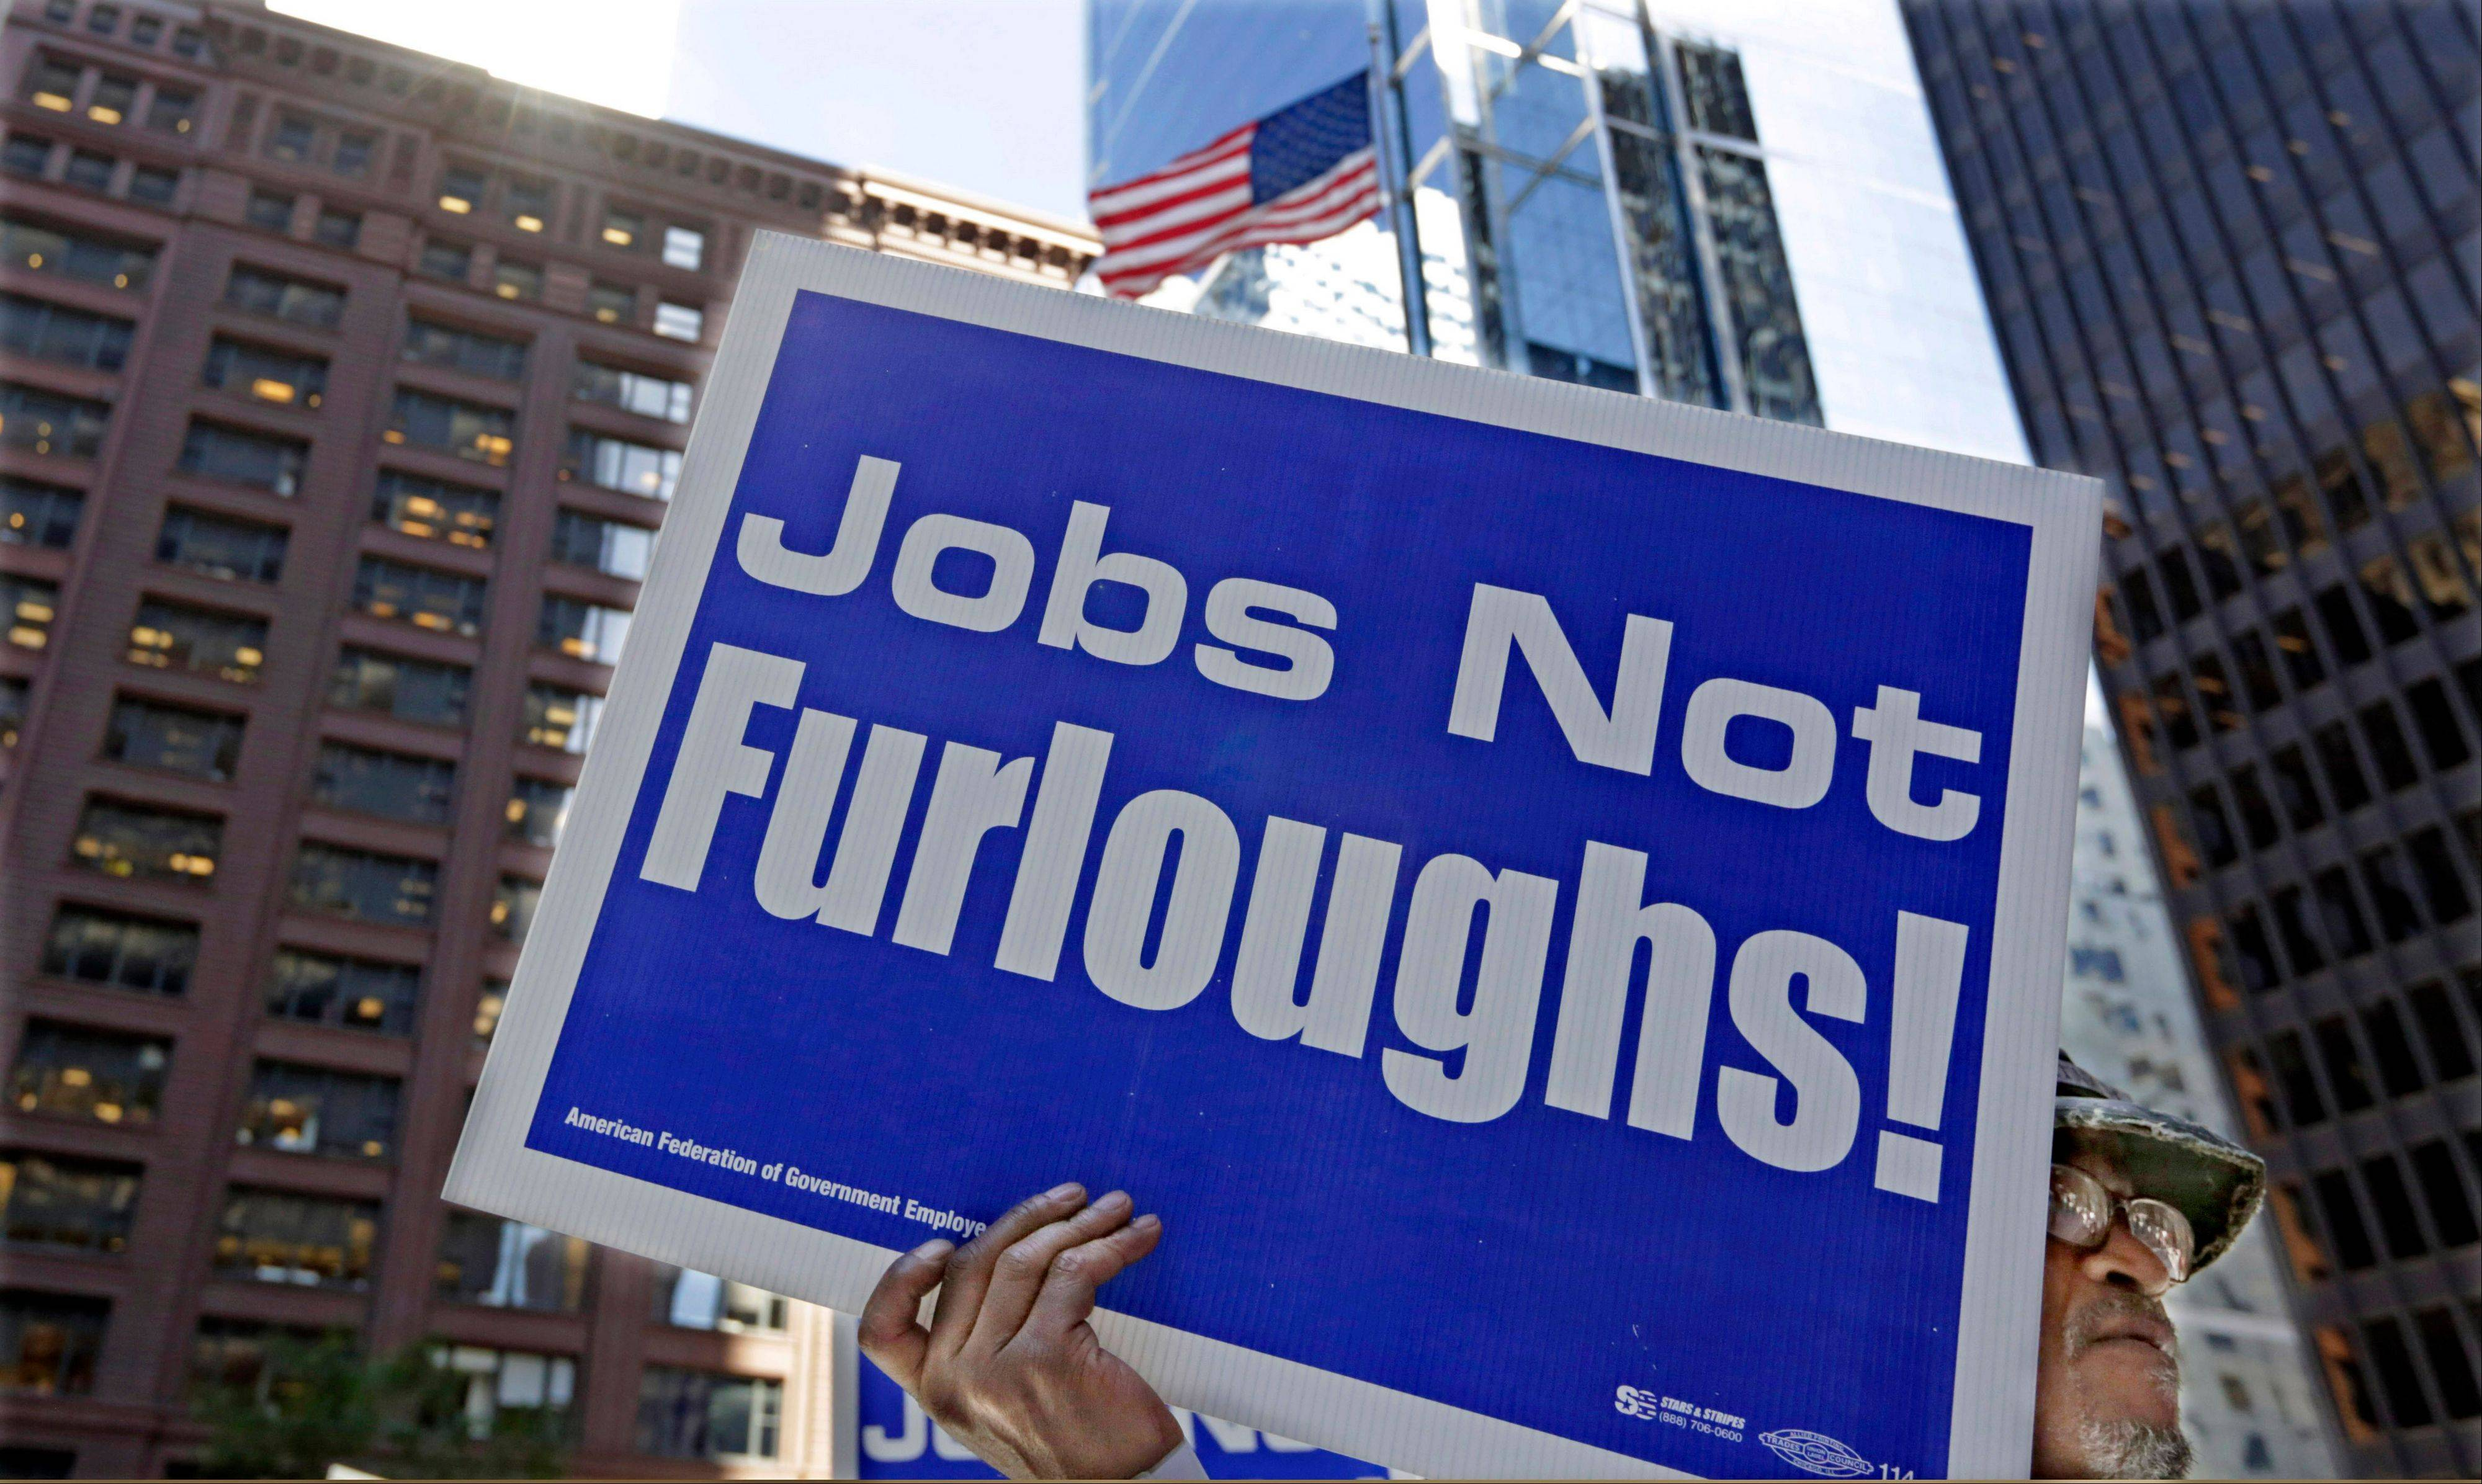 Government workers protest the possibility of a federal shutdown Monday in Chicago. Nearly 100 employees from federal agencies including the Environmental Protection Agency and the Department of Housing and Urban Development rallied in a downtown plaza on Monday. Thousands of workers could be furloughed if the shutdown materializes. The federal government is the nation�s biggest employer.